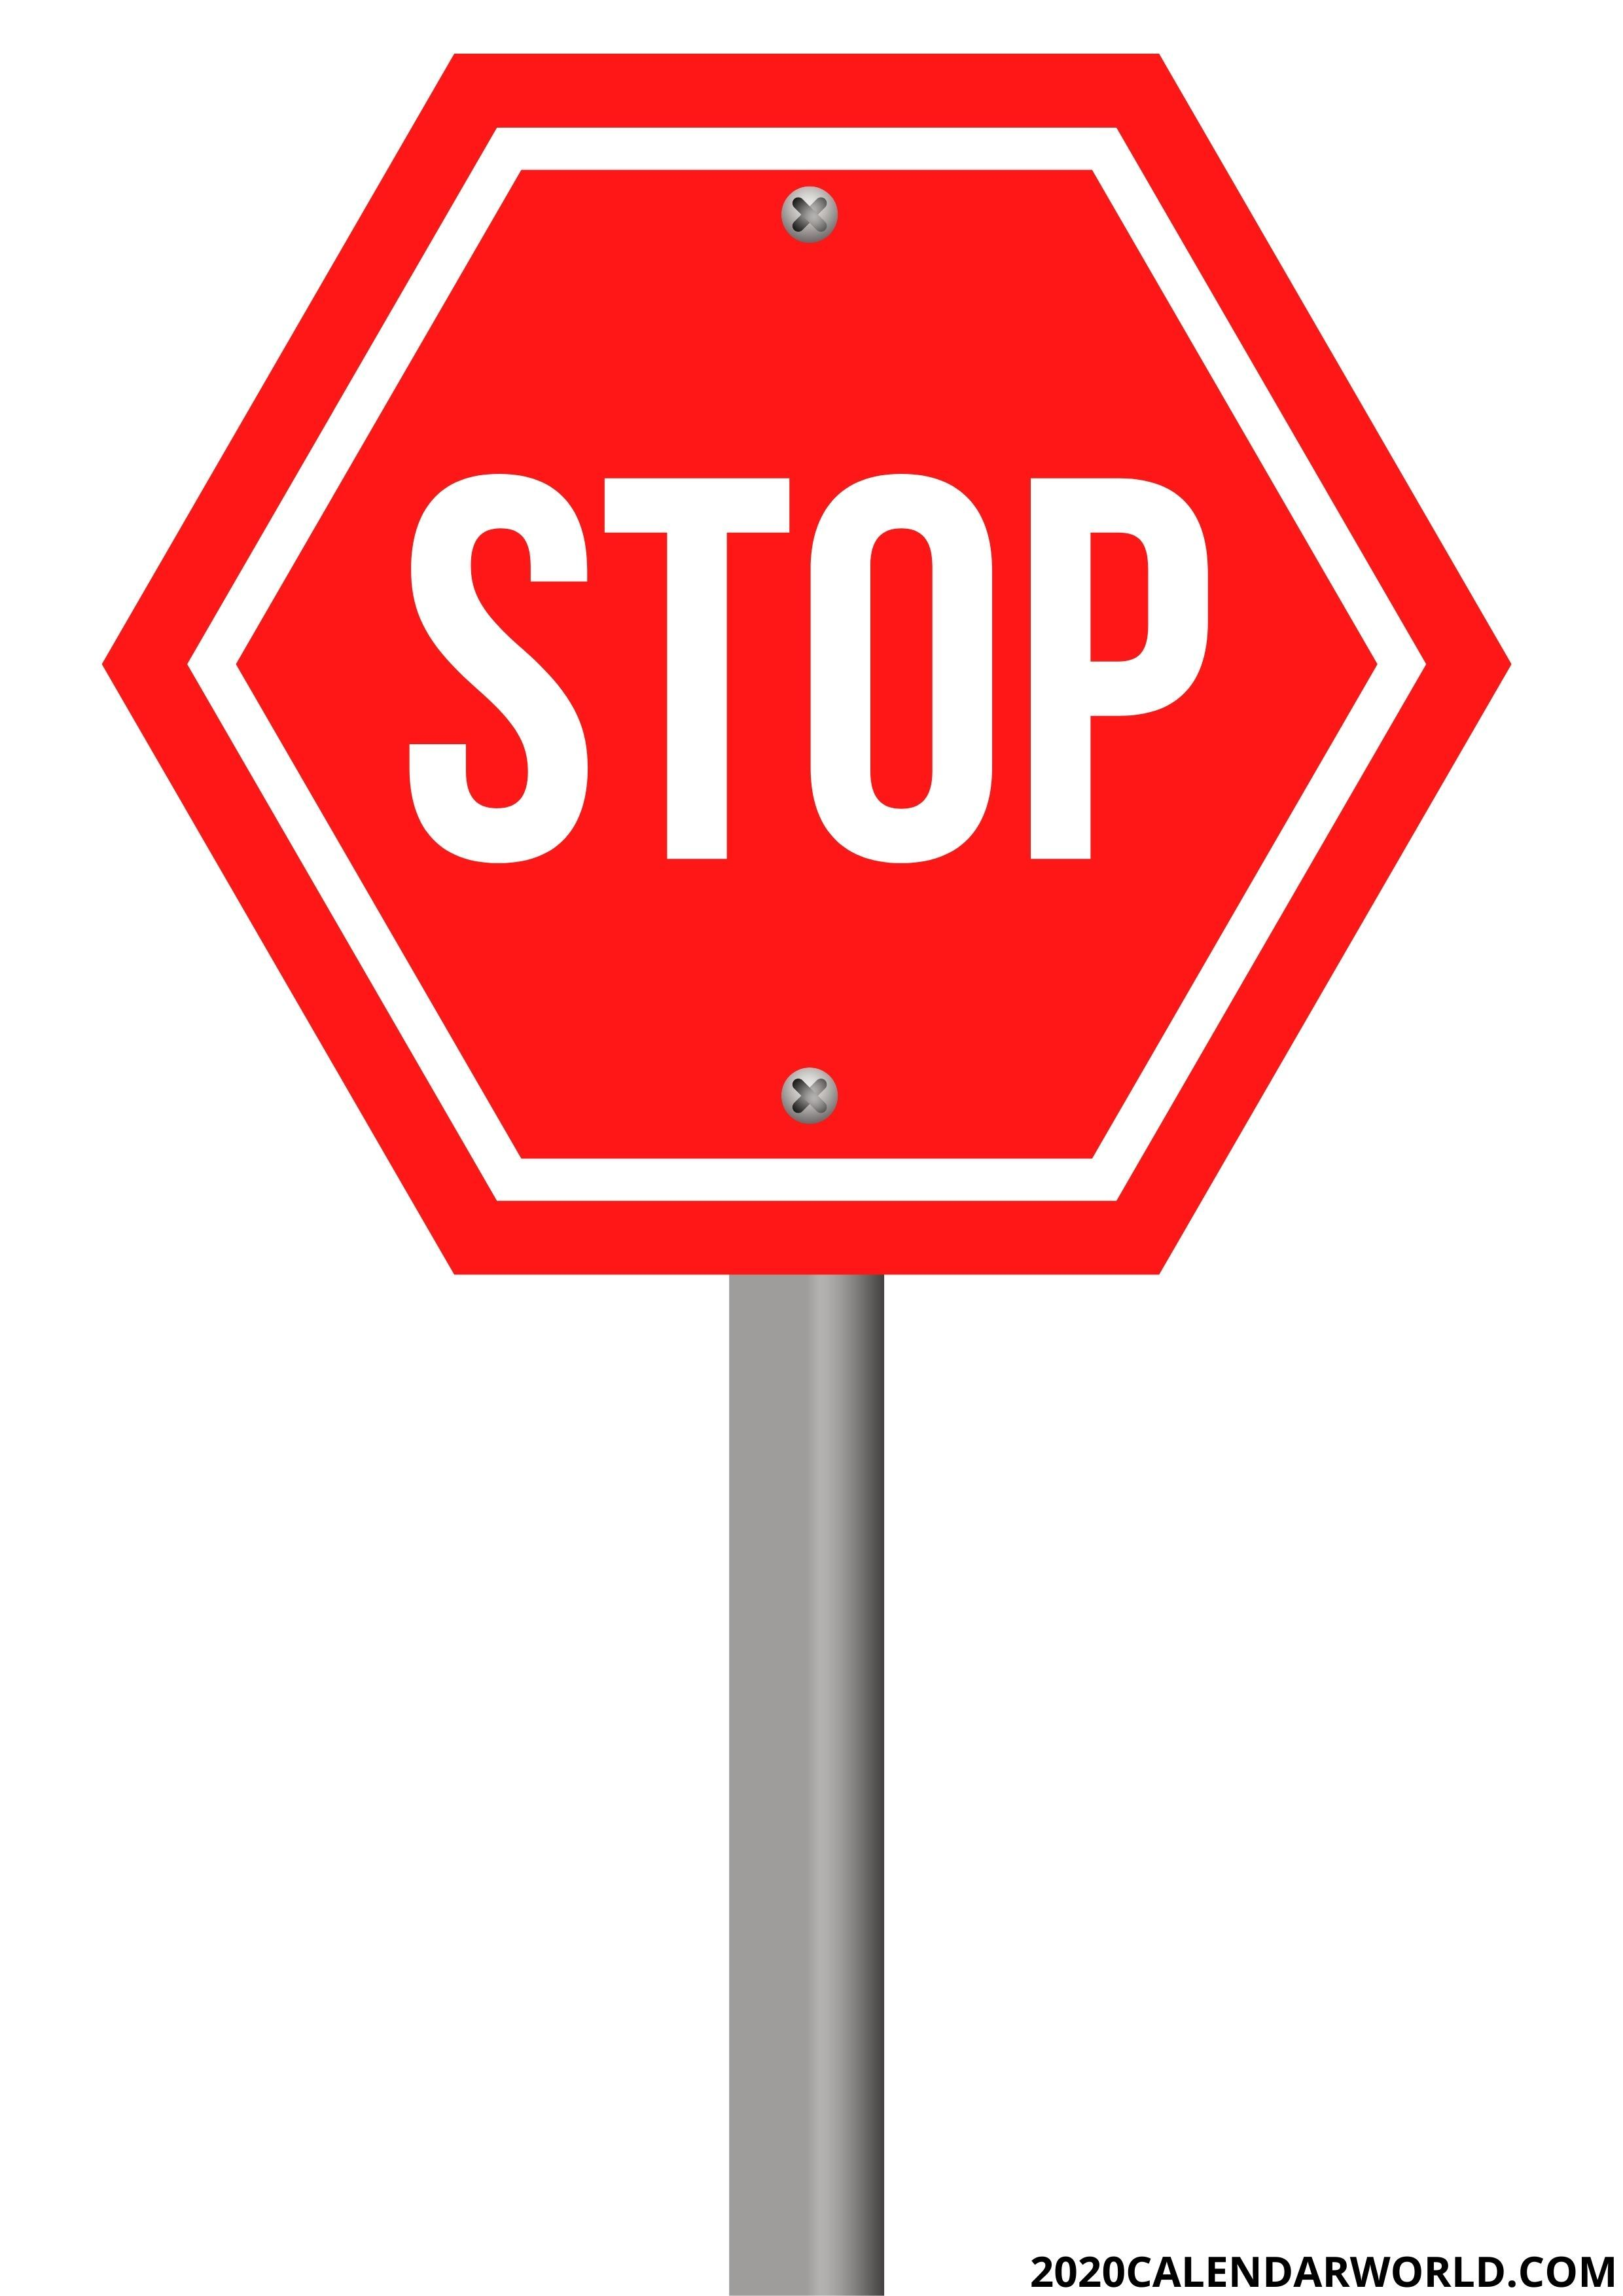 Free Download Printable Stop Sign Template In 2021 Sign Templates Printable Signs Templates